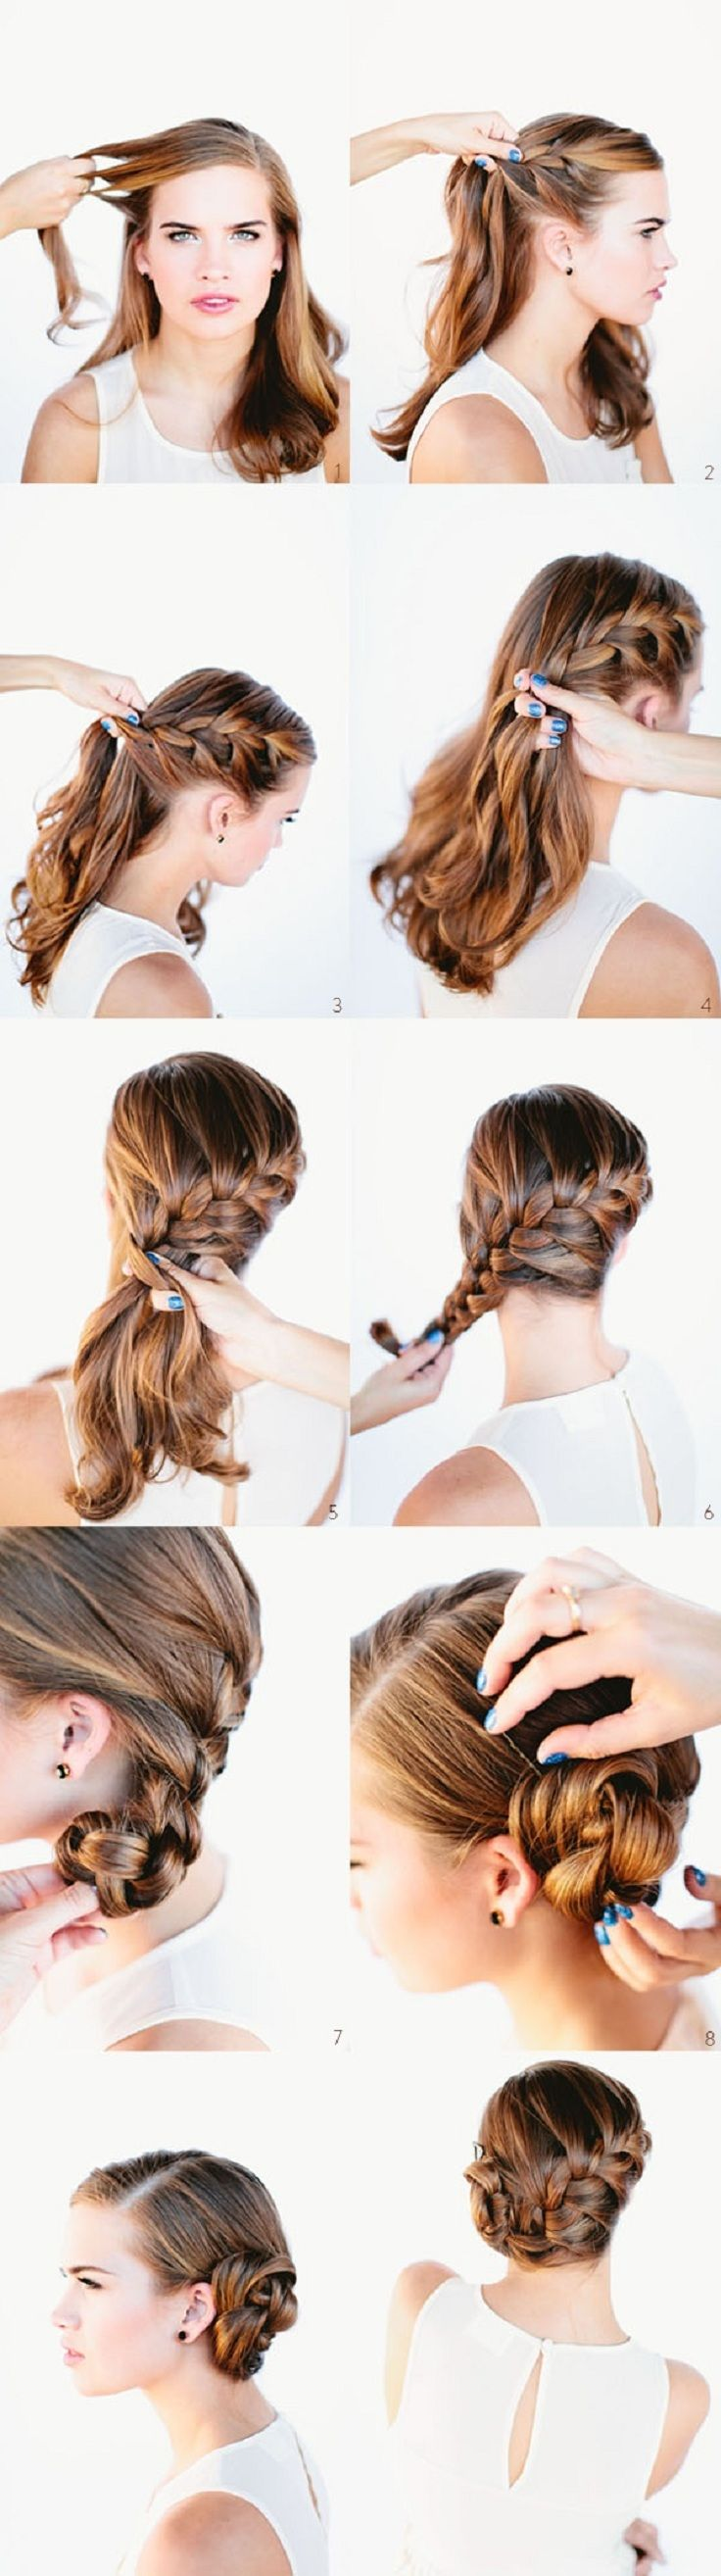 113 best hair style images on Pinterest